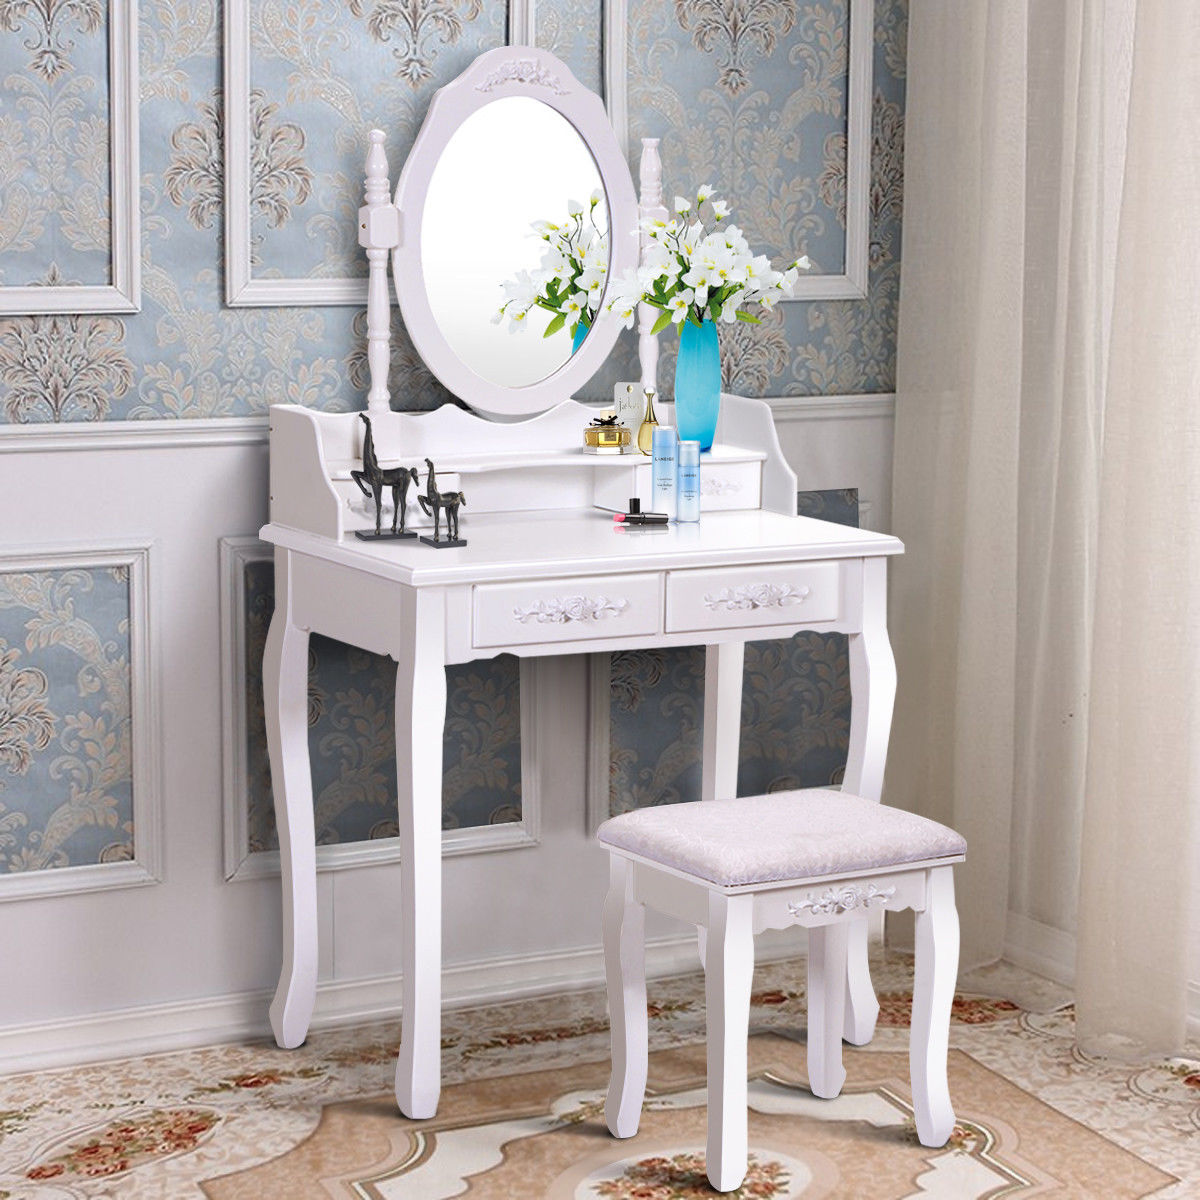 Ktaxon Vanity Dressing Table Jewelry w/Stool Makeup Set Wood Desk with Mirror + 4Drawers White